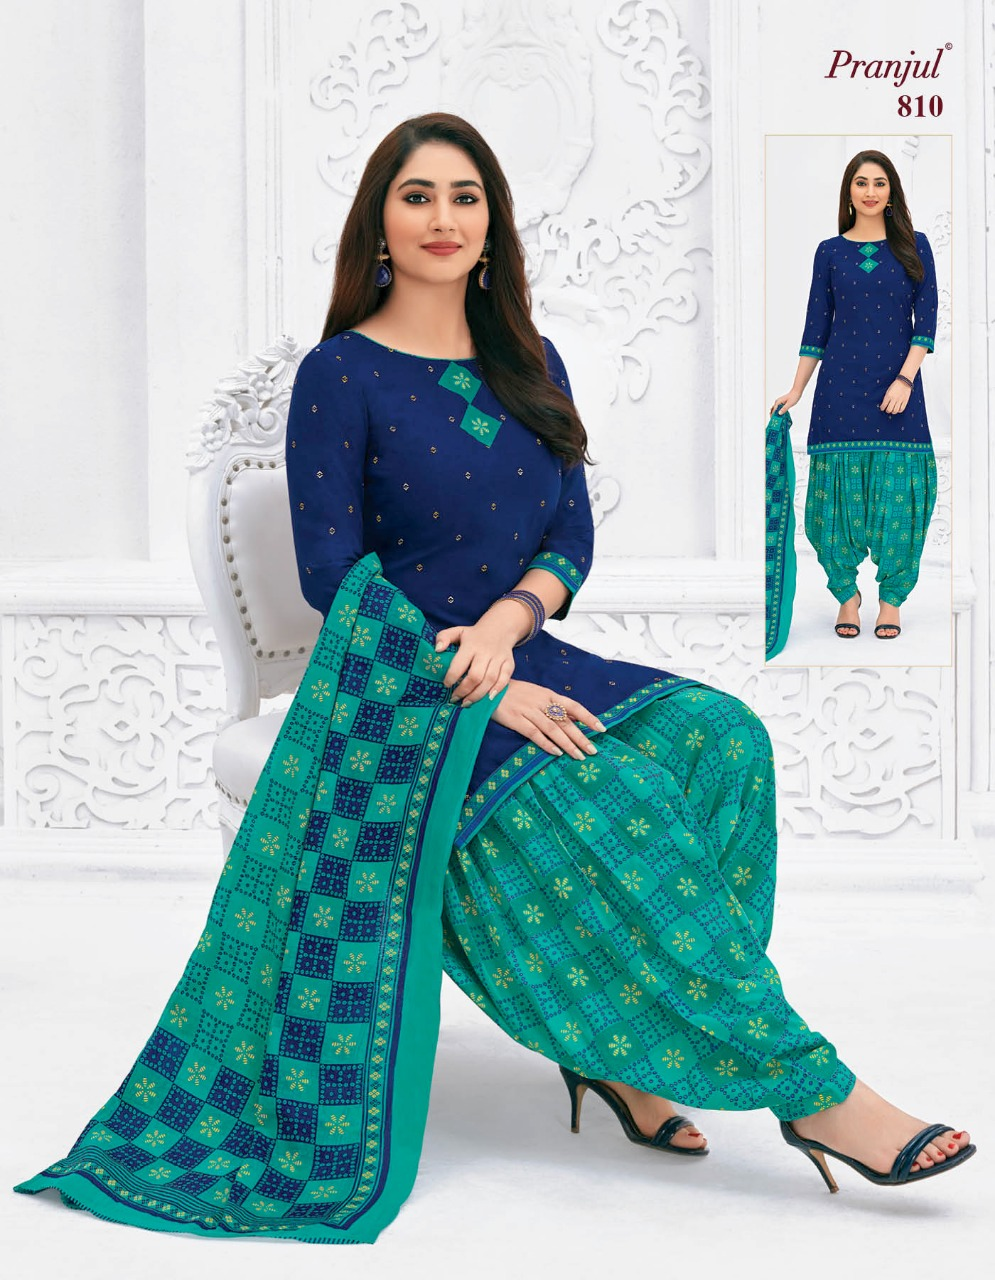 Pranjul Priyanka Vol 8 A Readymade Suit Wholesale Catalog 15 Pcs 5 - Pranjul Priyanka Vol 8 A Readymade Suit Wholesale Catalog 15 Pcs